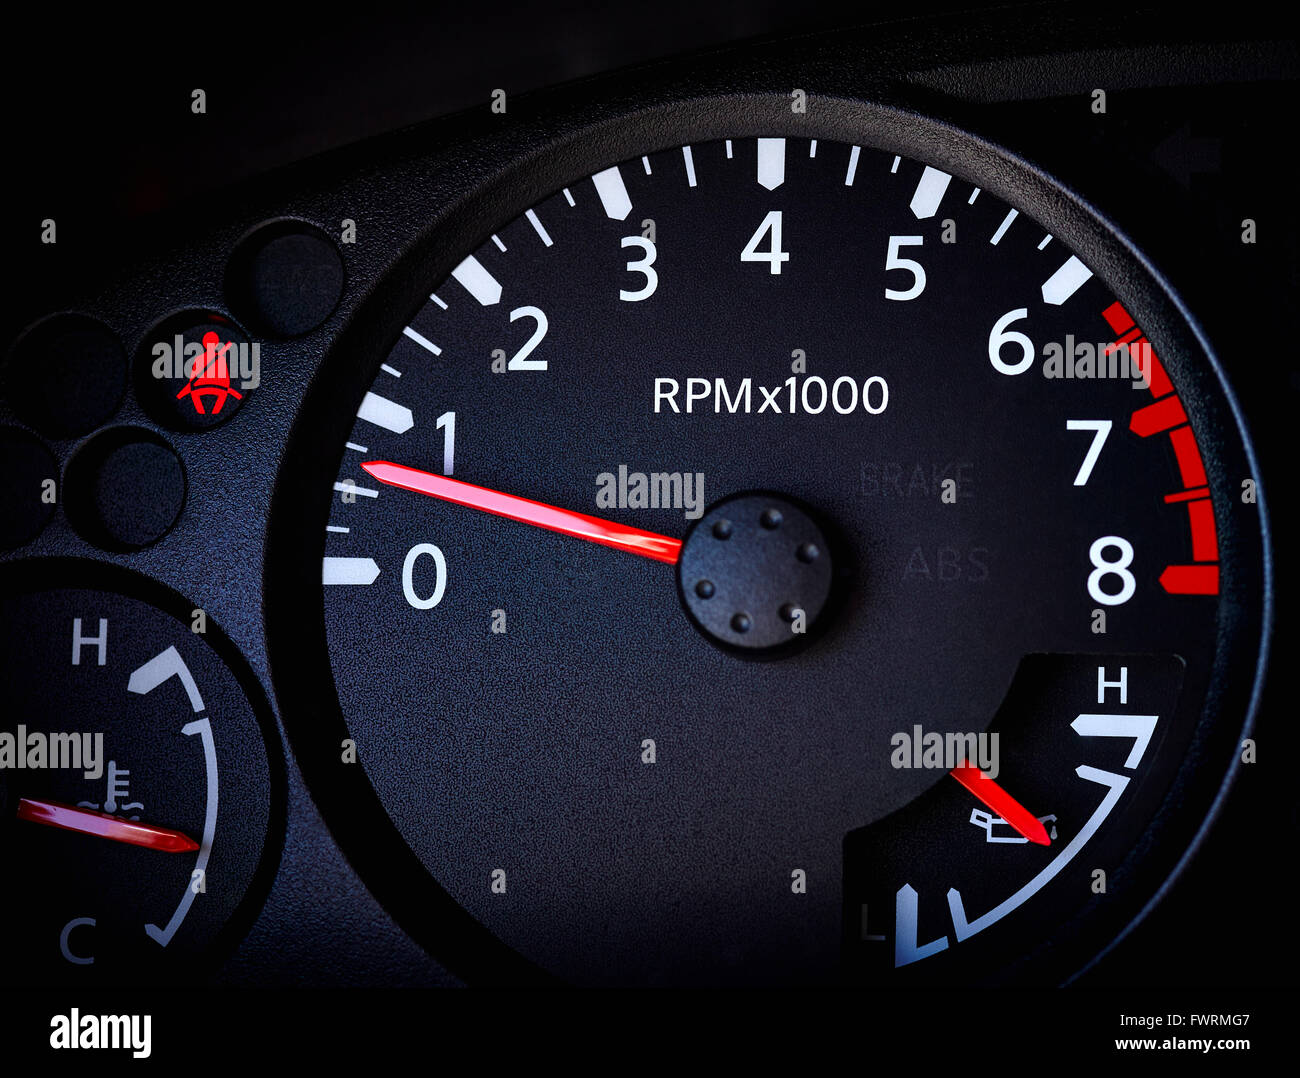 Close of up car tachometer with temperature guage, battery guage and seat belt warning light - Stock Image